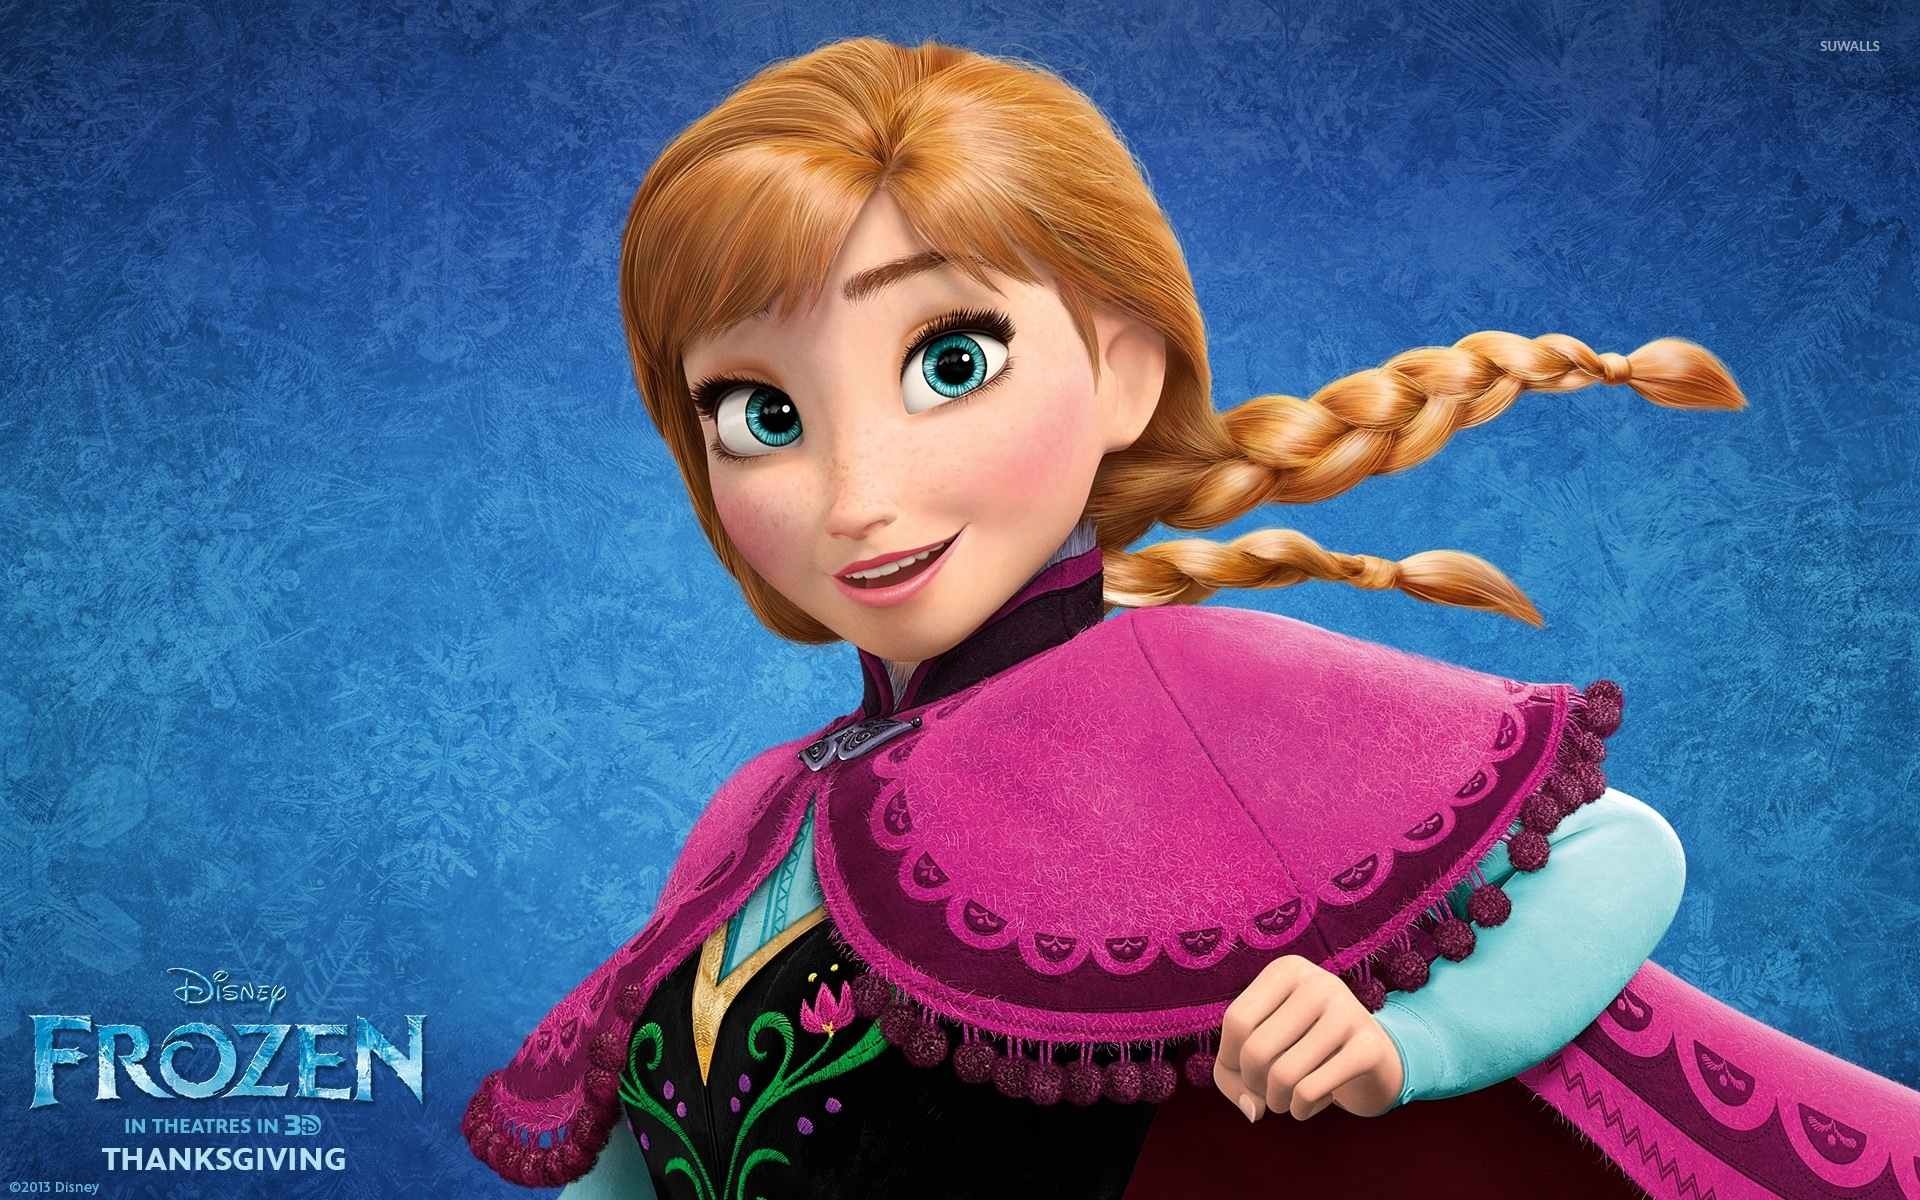 Frozen Anna | 4K wallpapers, free and easy to download